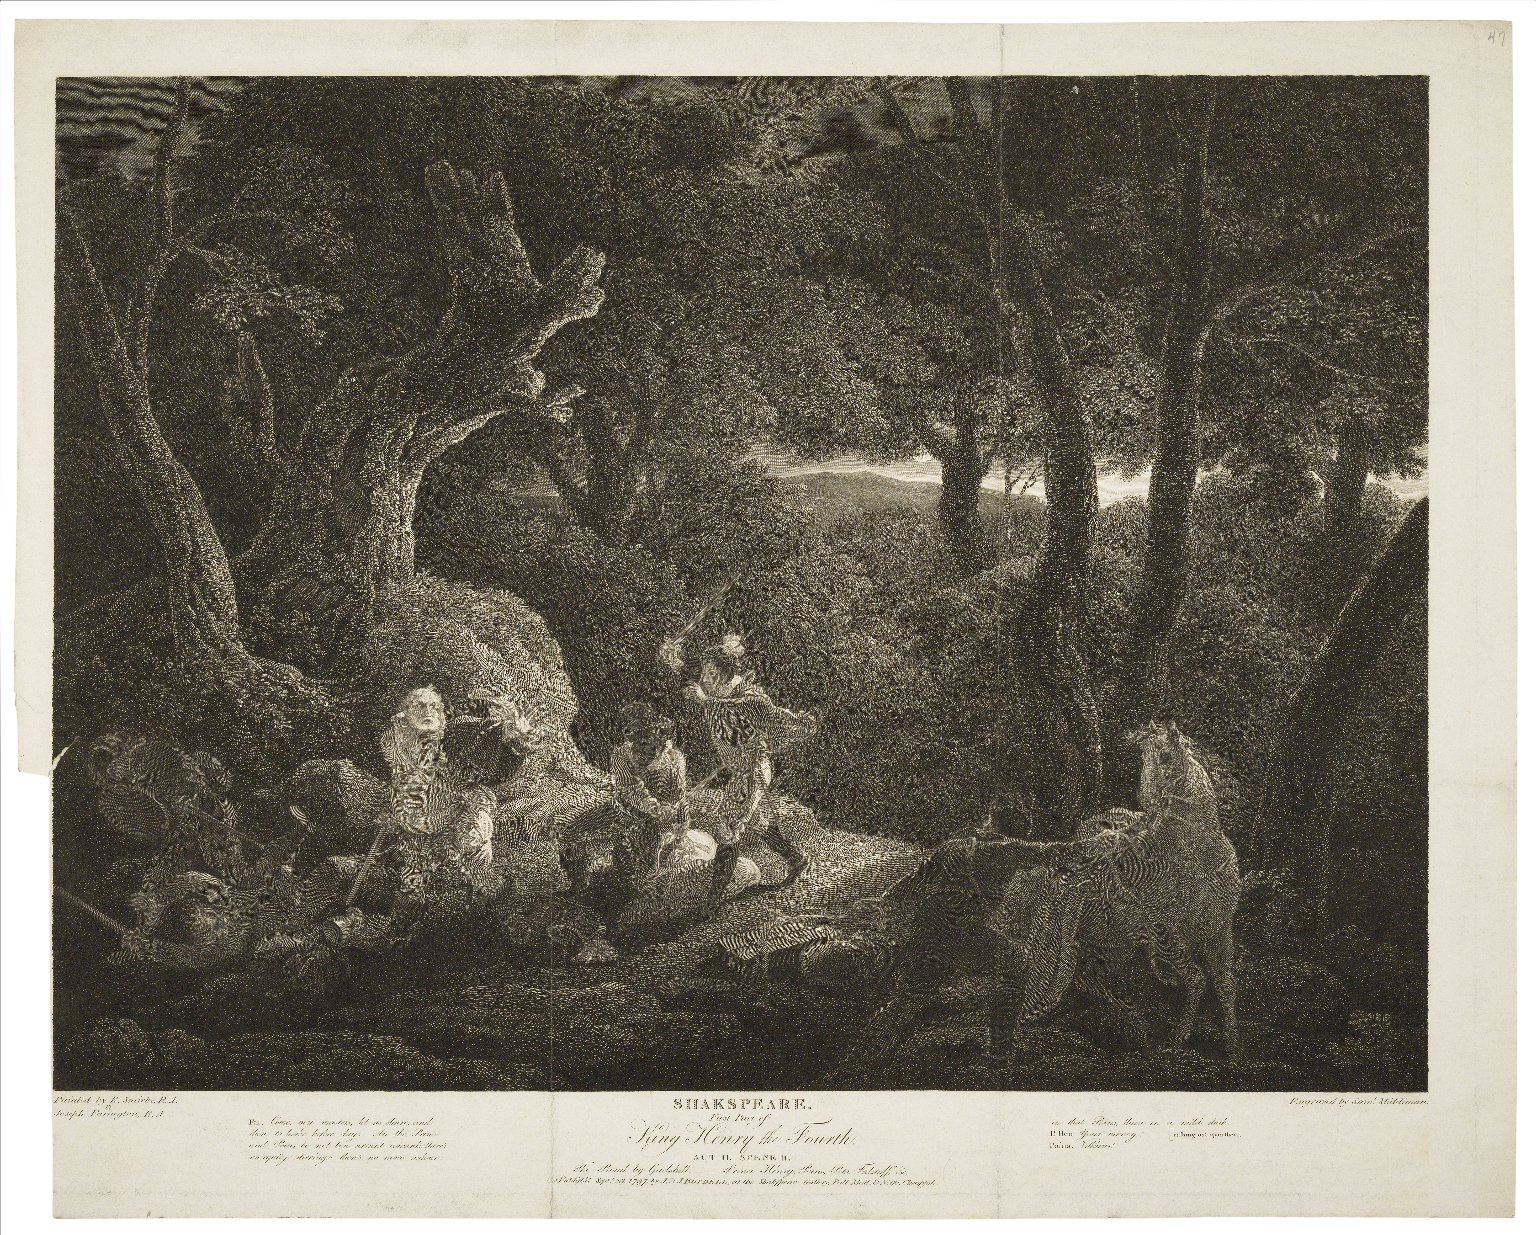 First part of King Henry the Fourth, act II, scene II, the road by Gadshill [graphic] / painted by R. Smirke & Joseph Farington ; engraved by Saml. Middiman.